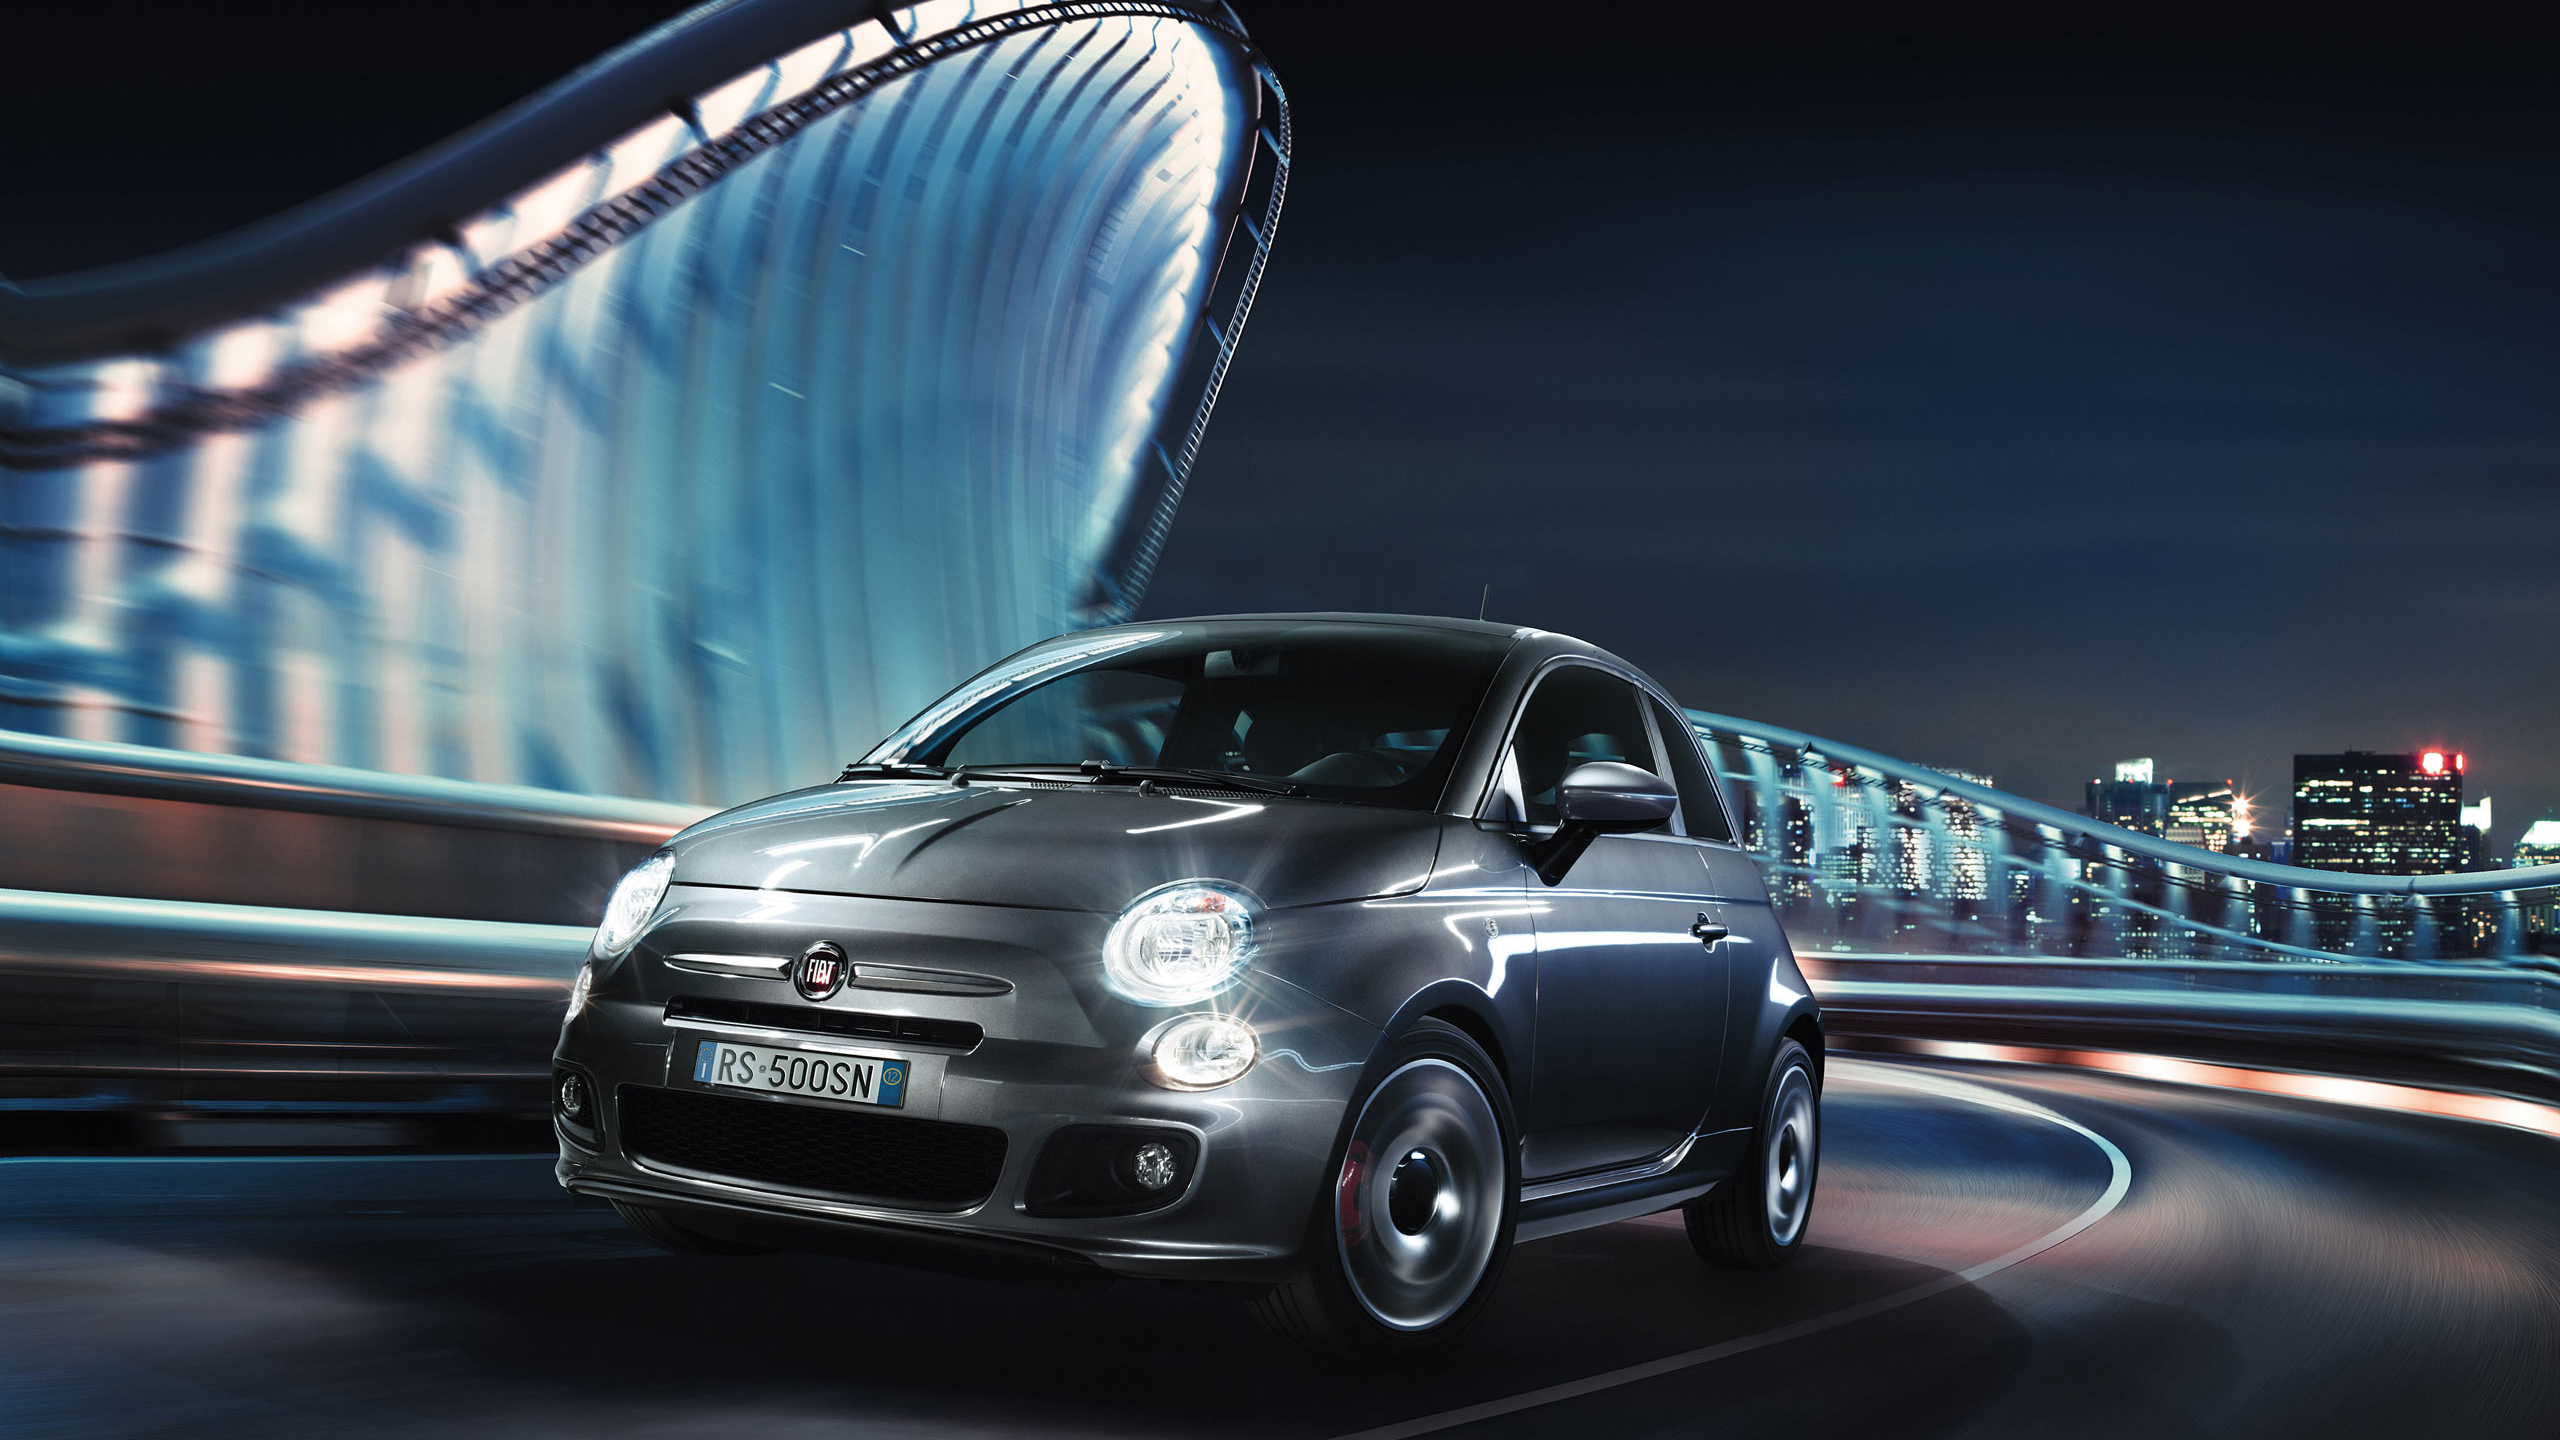 Fiat Wallpapers and Background Images   stmednet 2560x1440